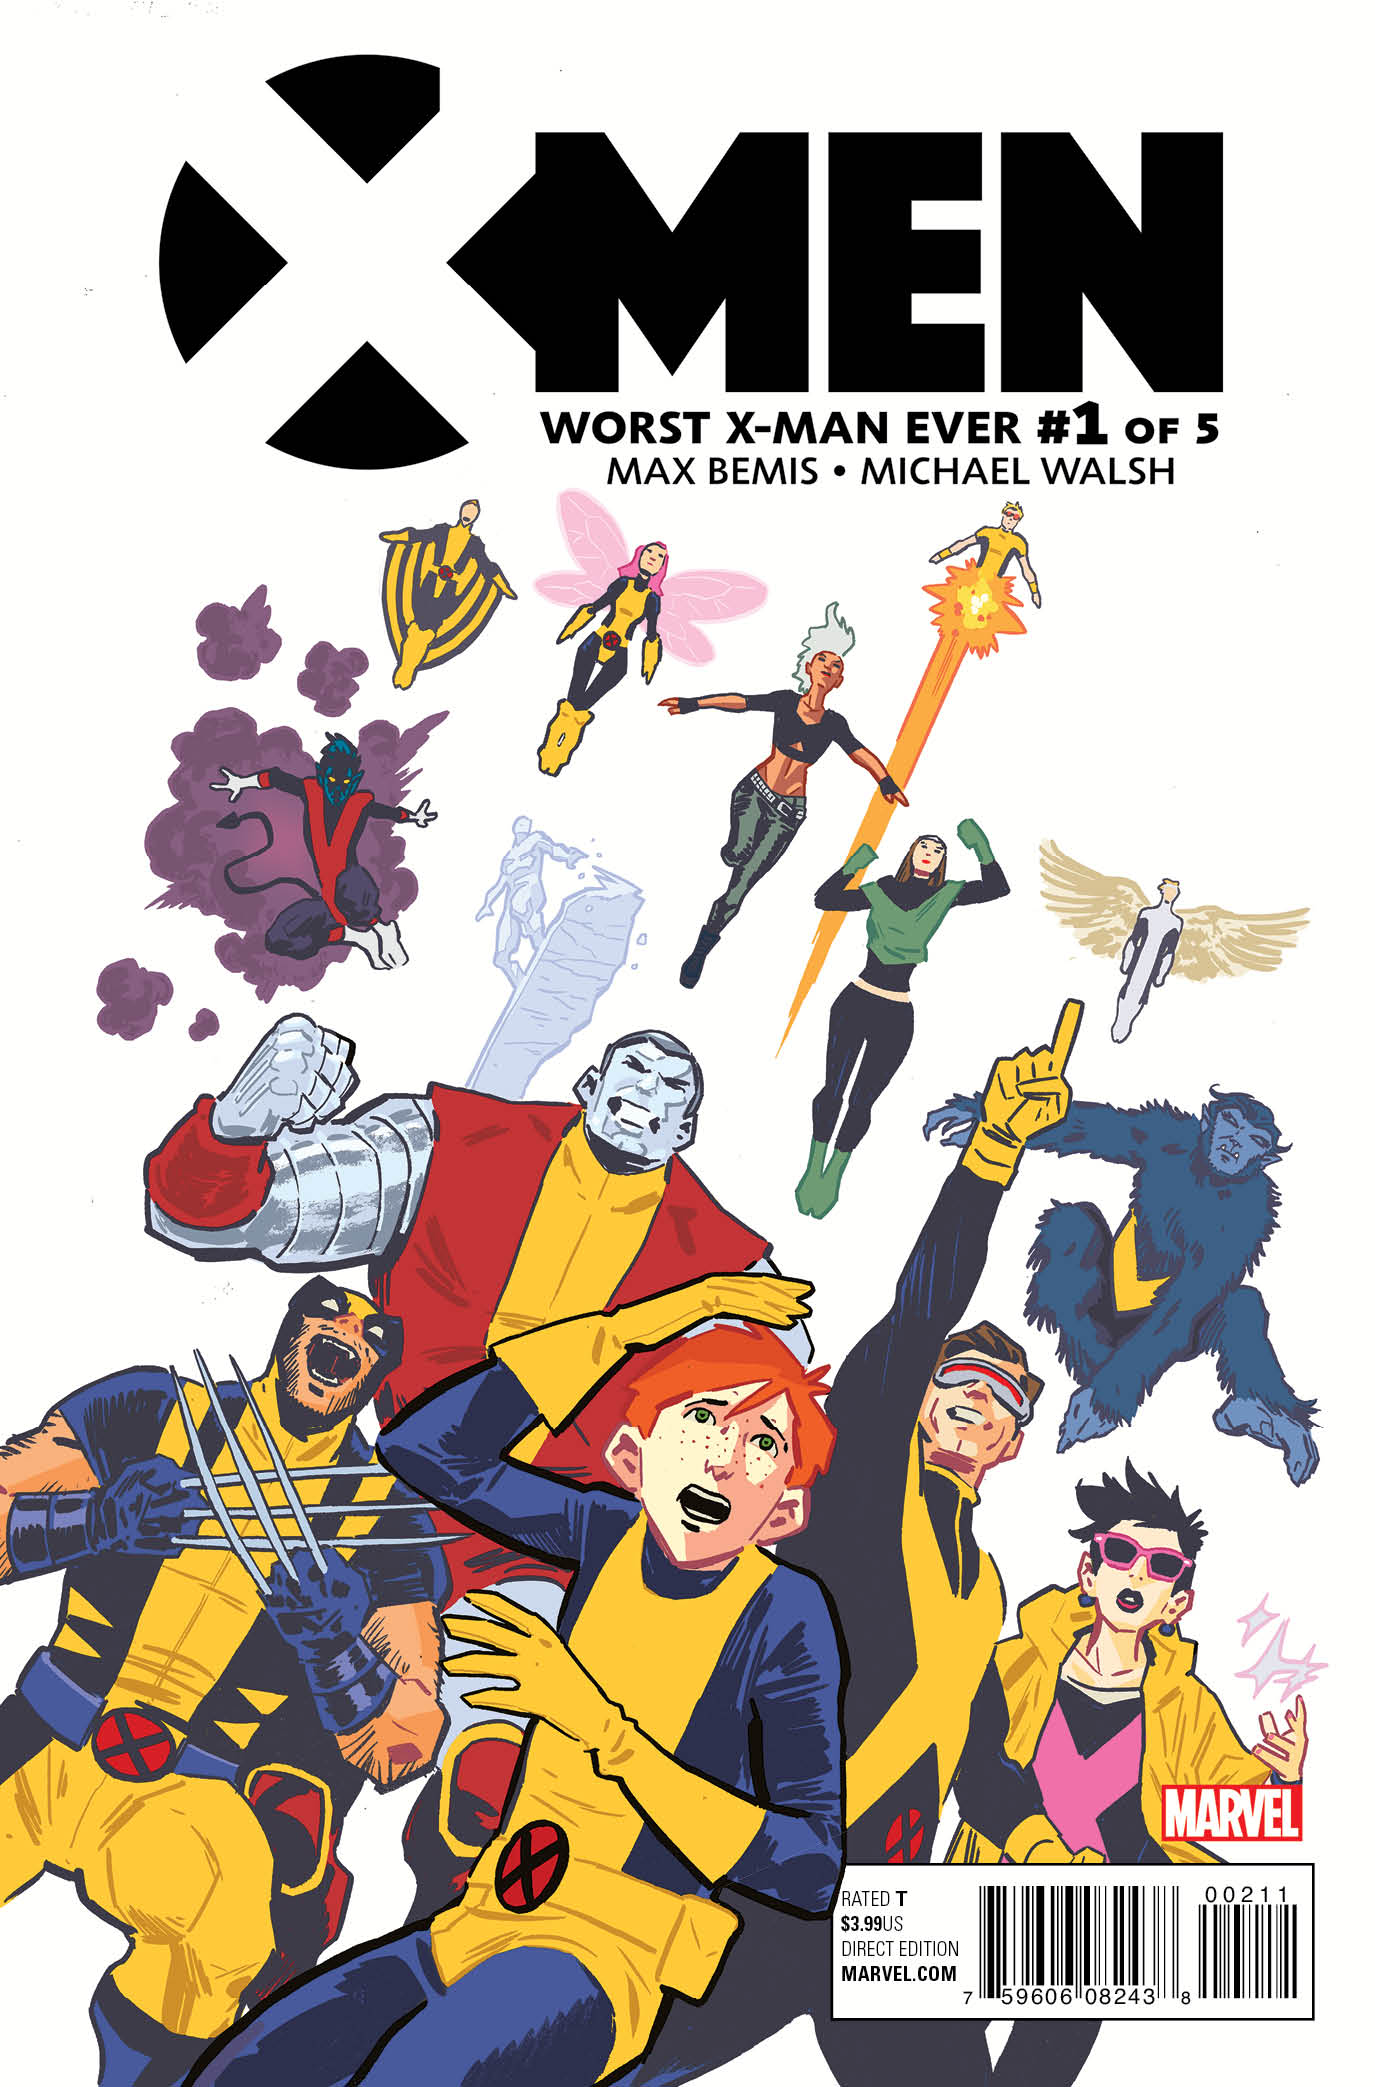 New Look at Worst X-Men Ever